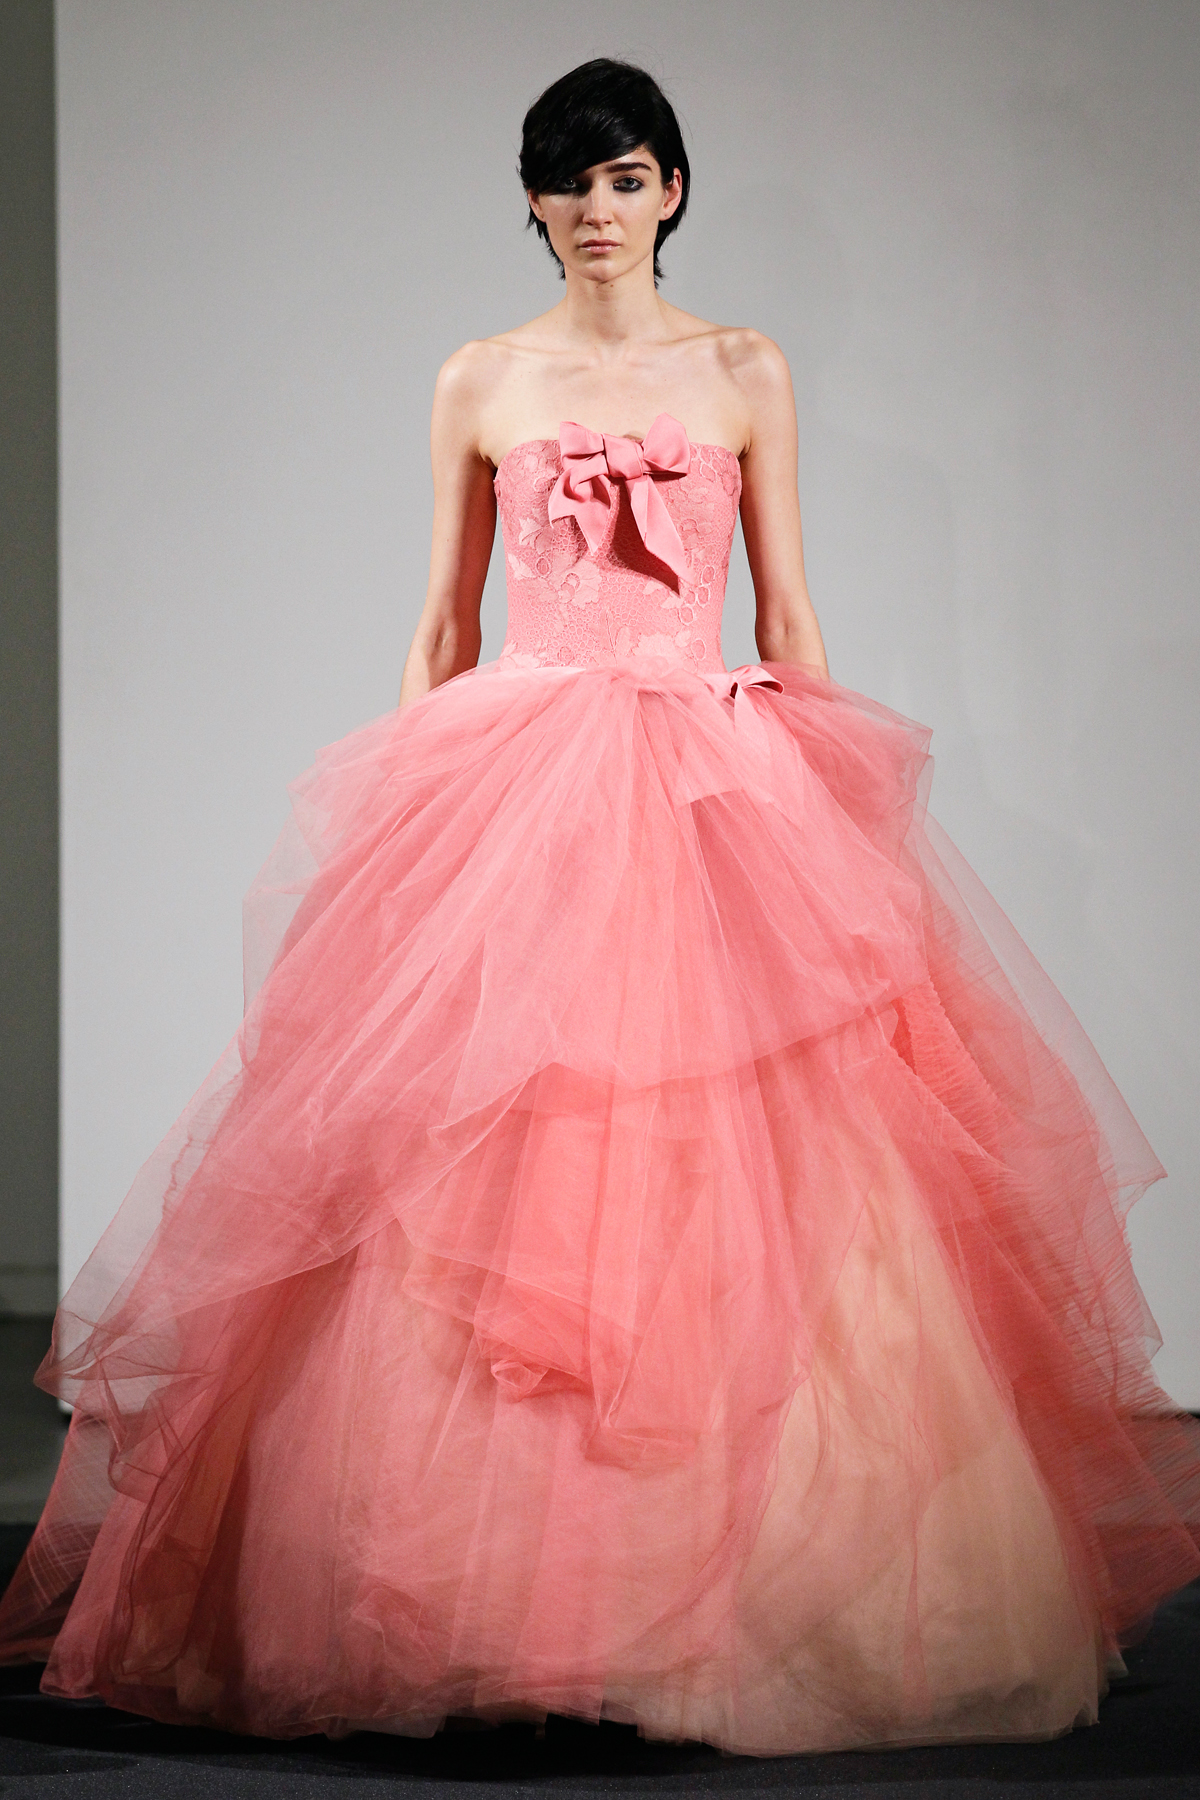 Vera wang 39 s fall 2014 bridal collection features all pink for Where to buy vera wang wedding dresses